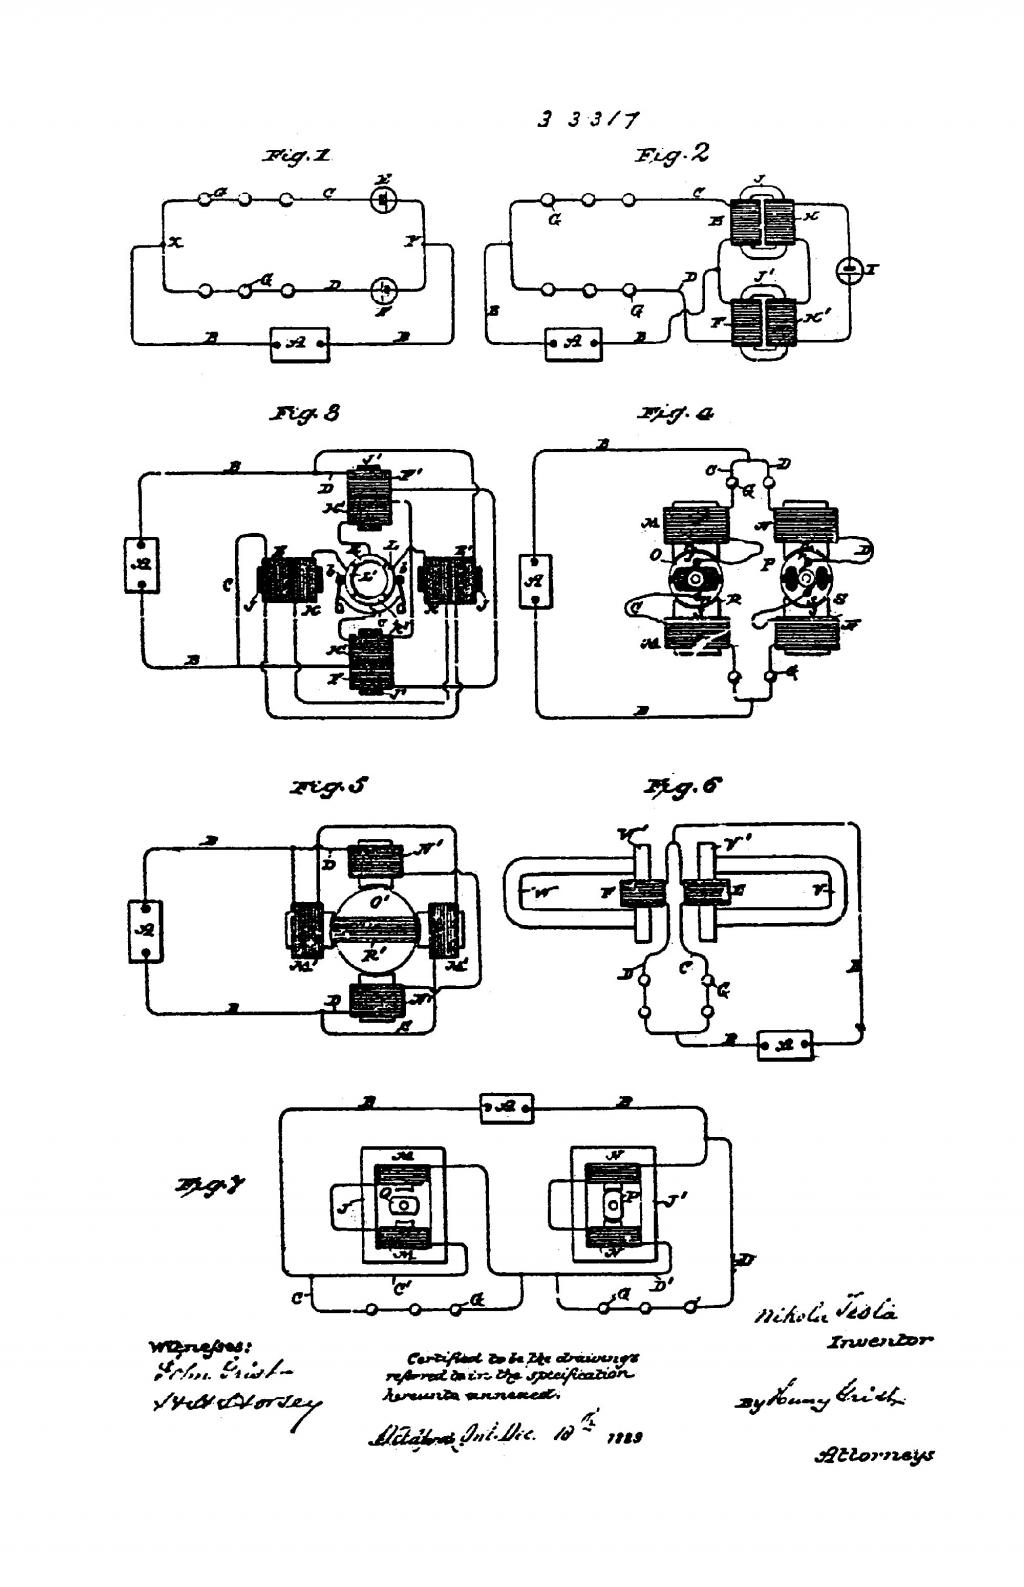 Nikola Tesla Canadian Patent 33317 - Improvements in Methods and Apparatus for Converting Alternating into Direct Currents - Image 1